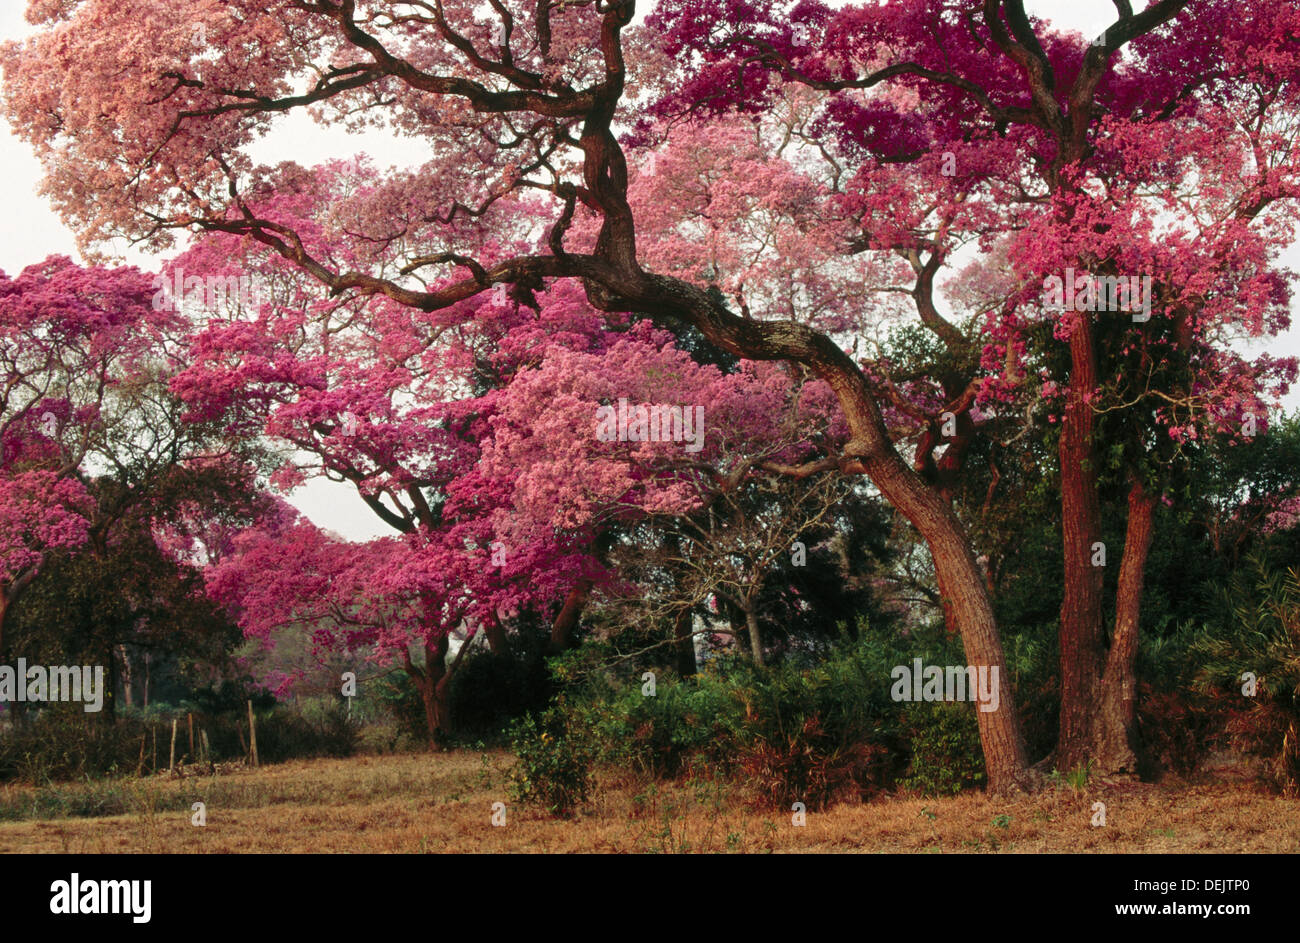 Pink trumpet trees in flower dry pasture with trees type of stock pink trumpet trees in flower dry pasture with trees type of landscape like savannah or park pantanal near pocone mato mightylinksfo